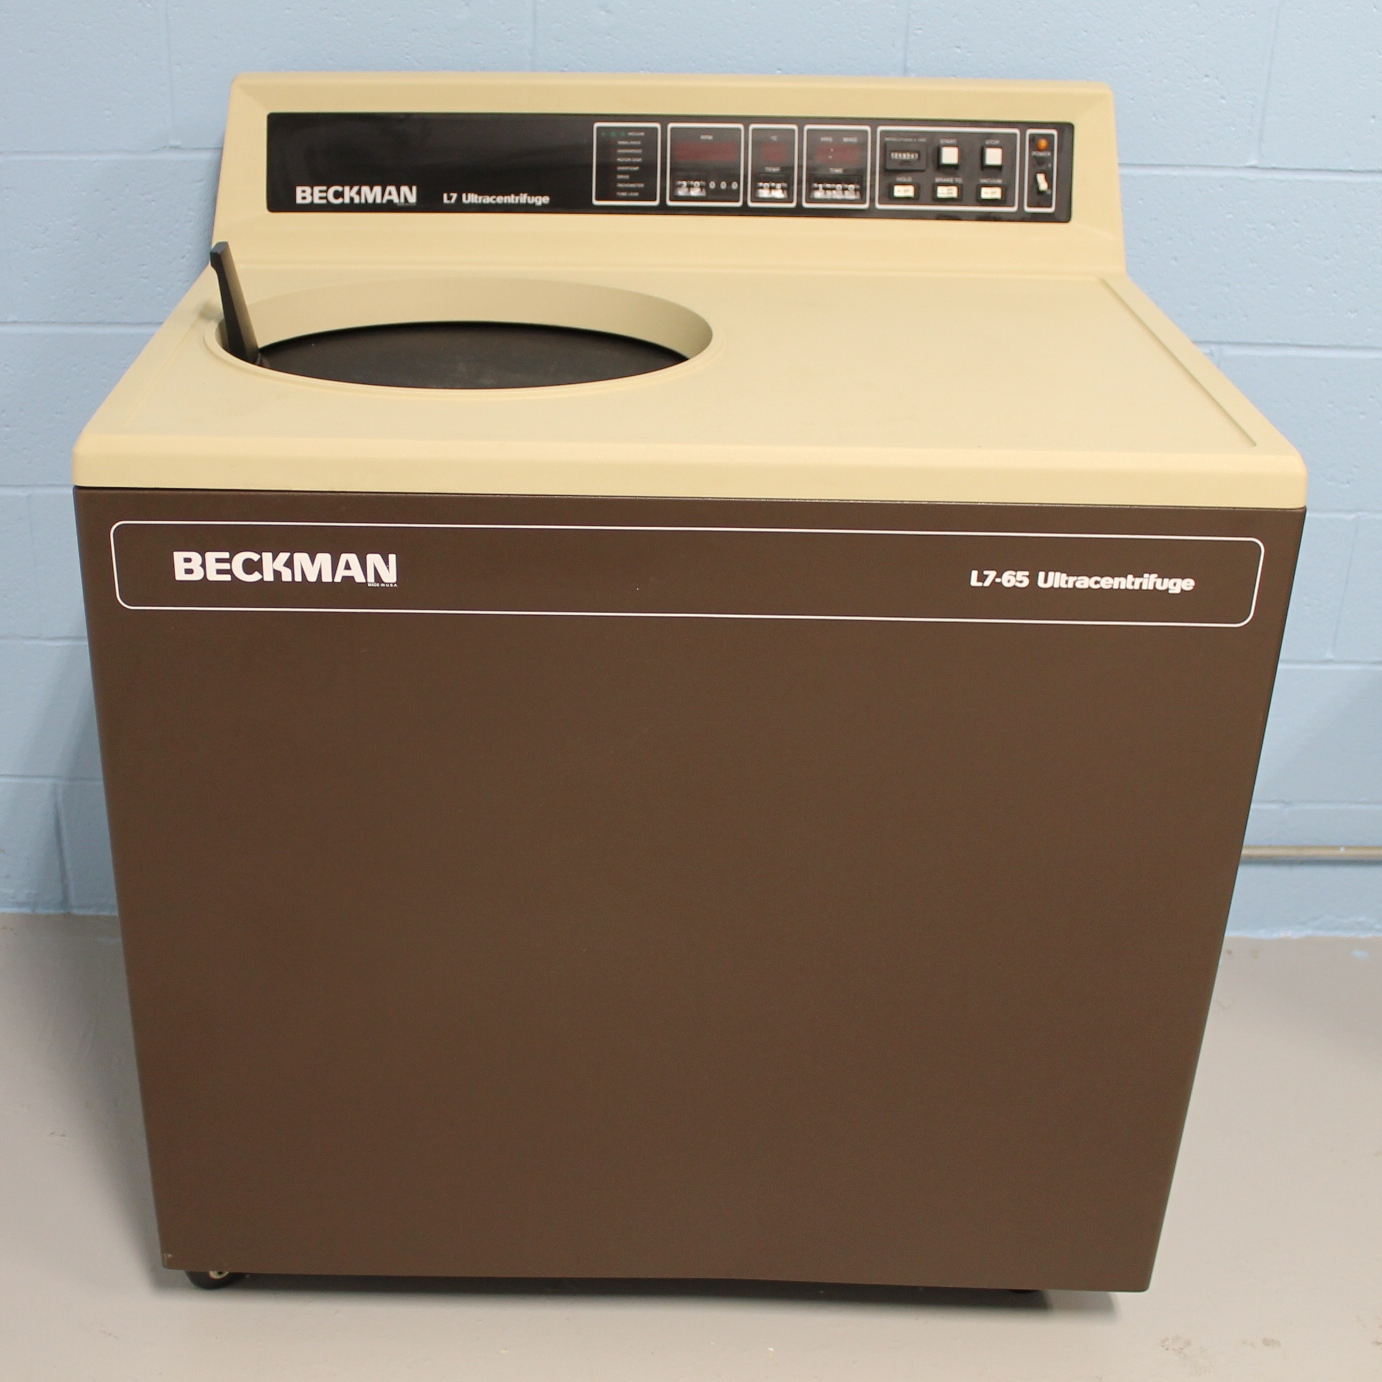 Beckman Coulter L7-65 Ultracentrifuge Image